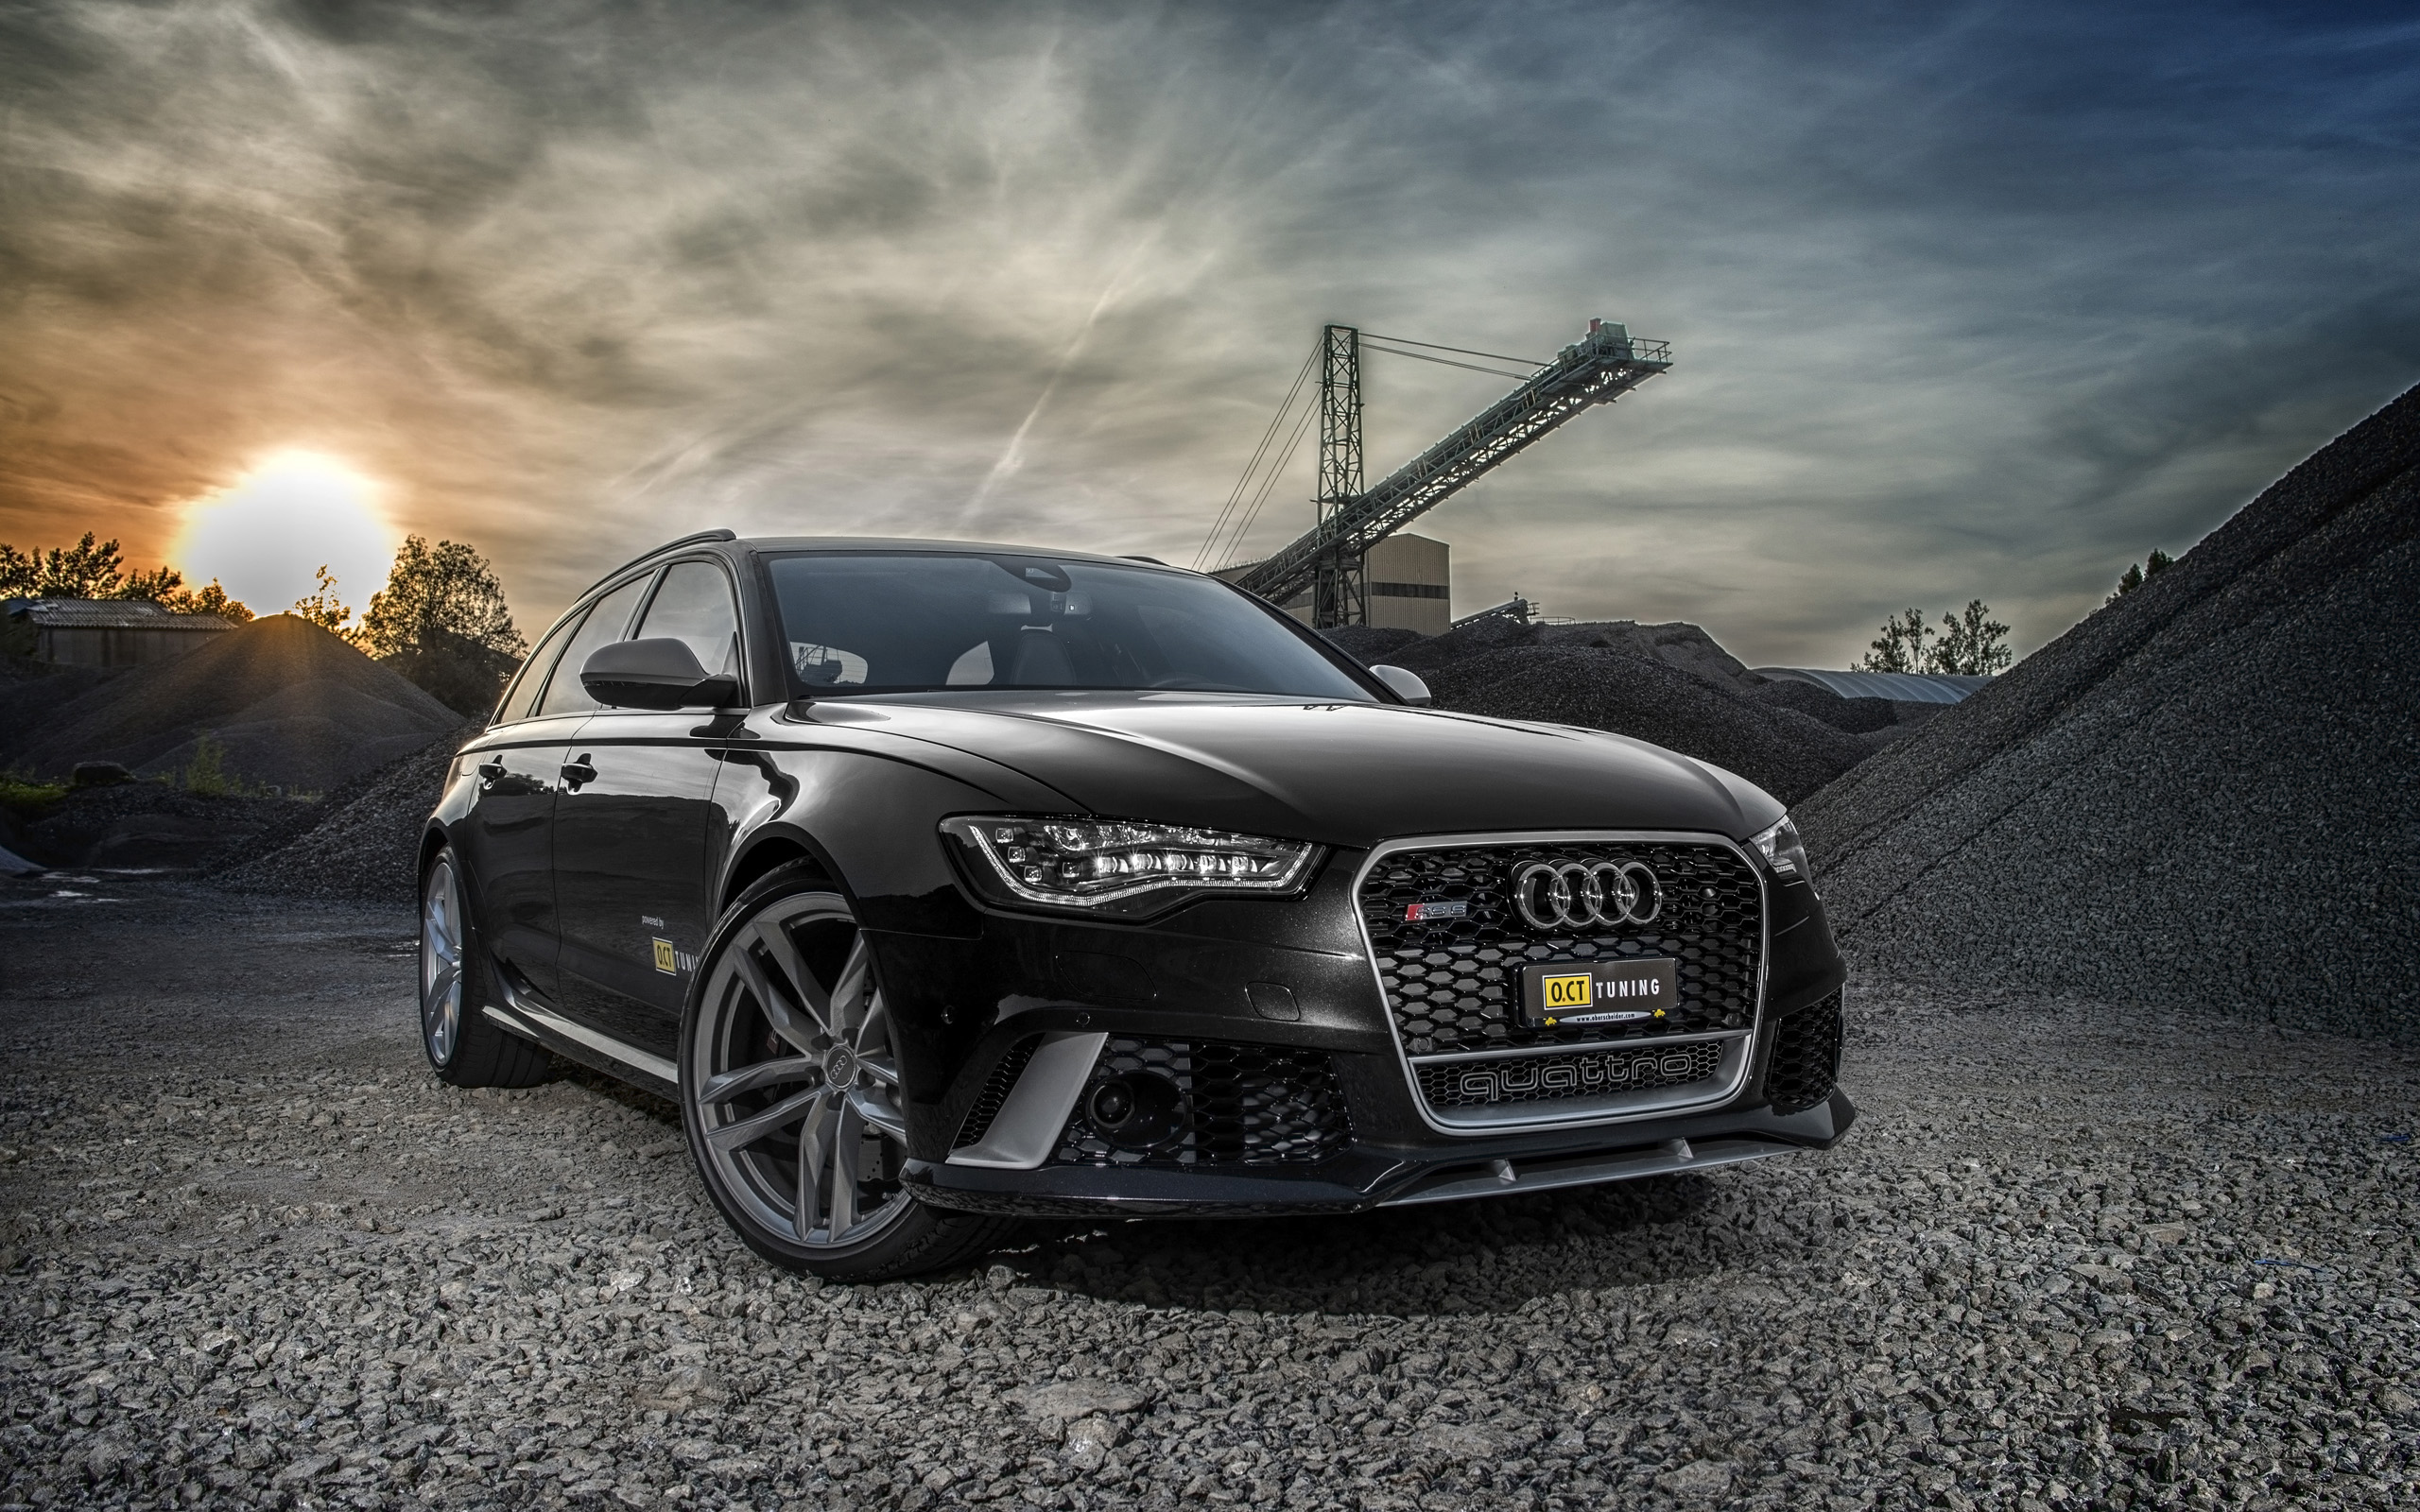 O Ct Tuning Audi Rs6 Wallpaper Hd Car Wallpapers Id 4044